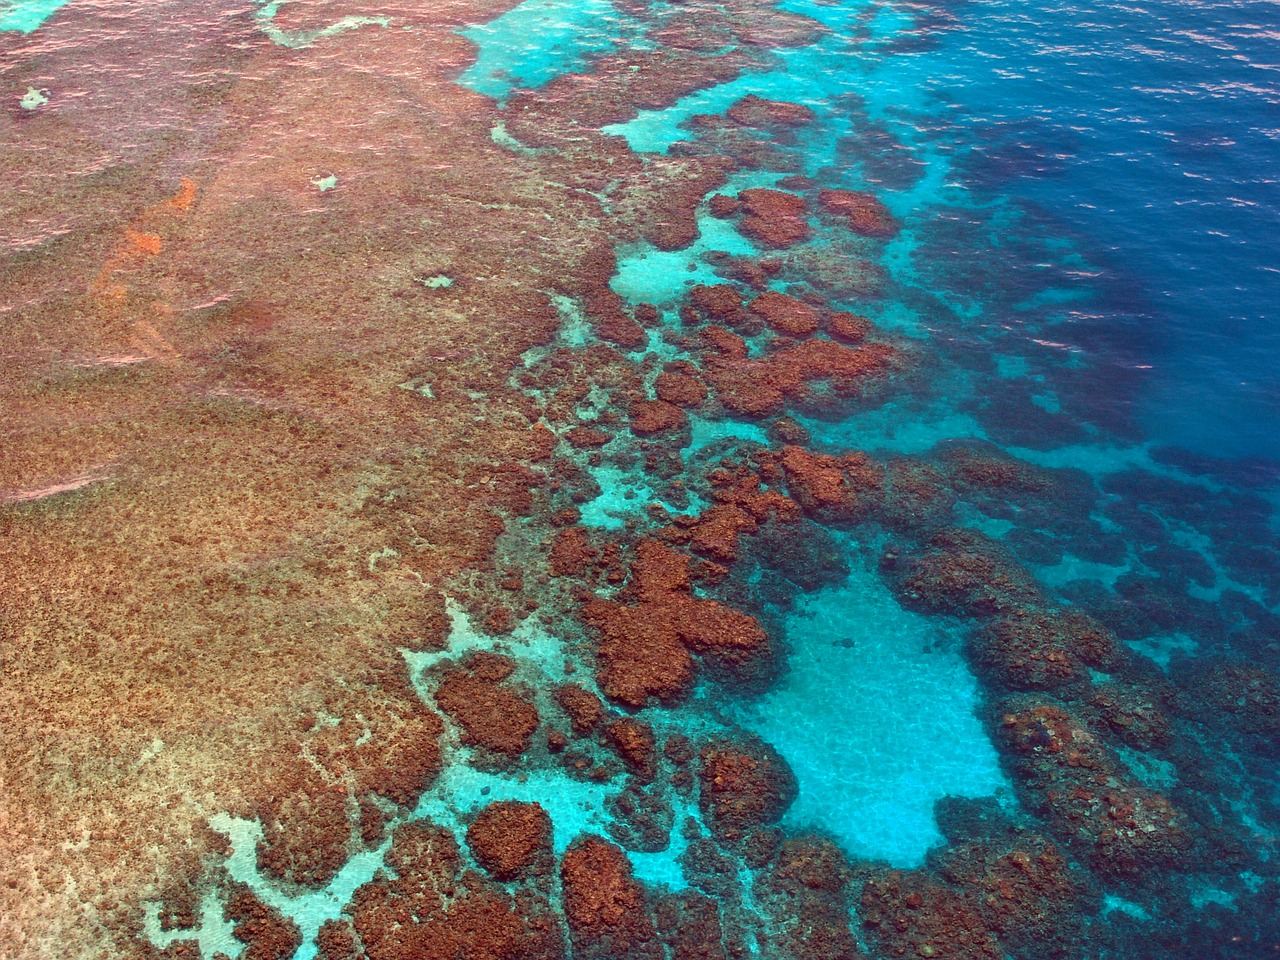 A section of the great barrier reef with red coral above the waterline of aqua seas